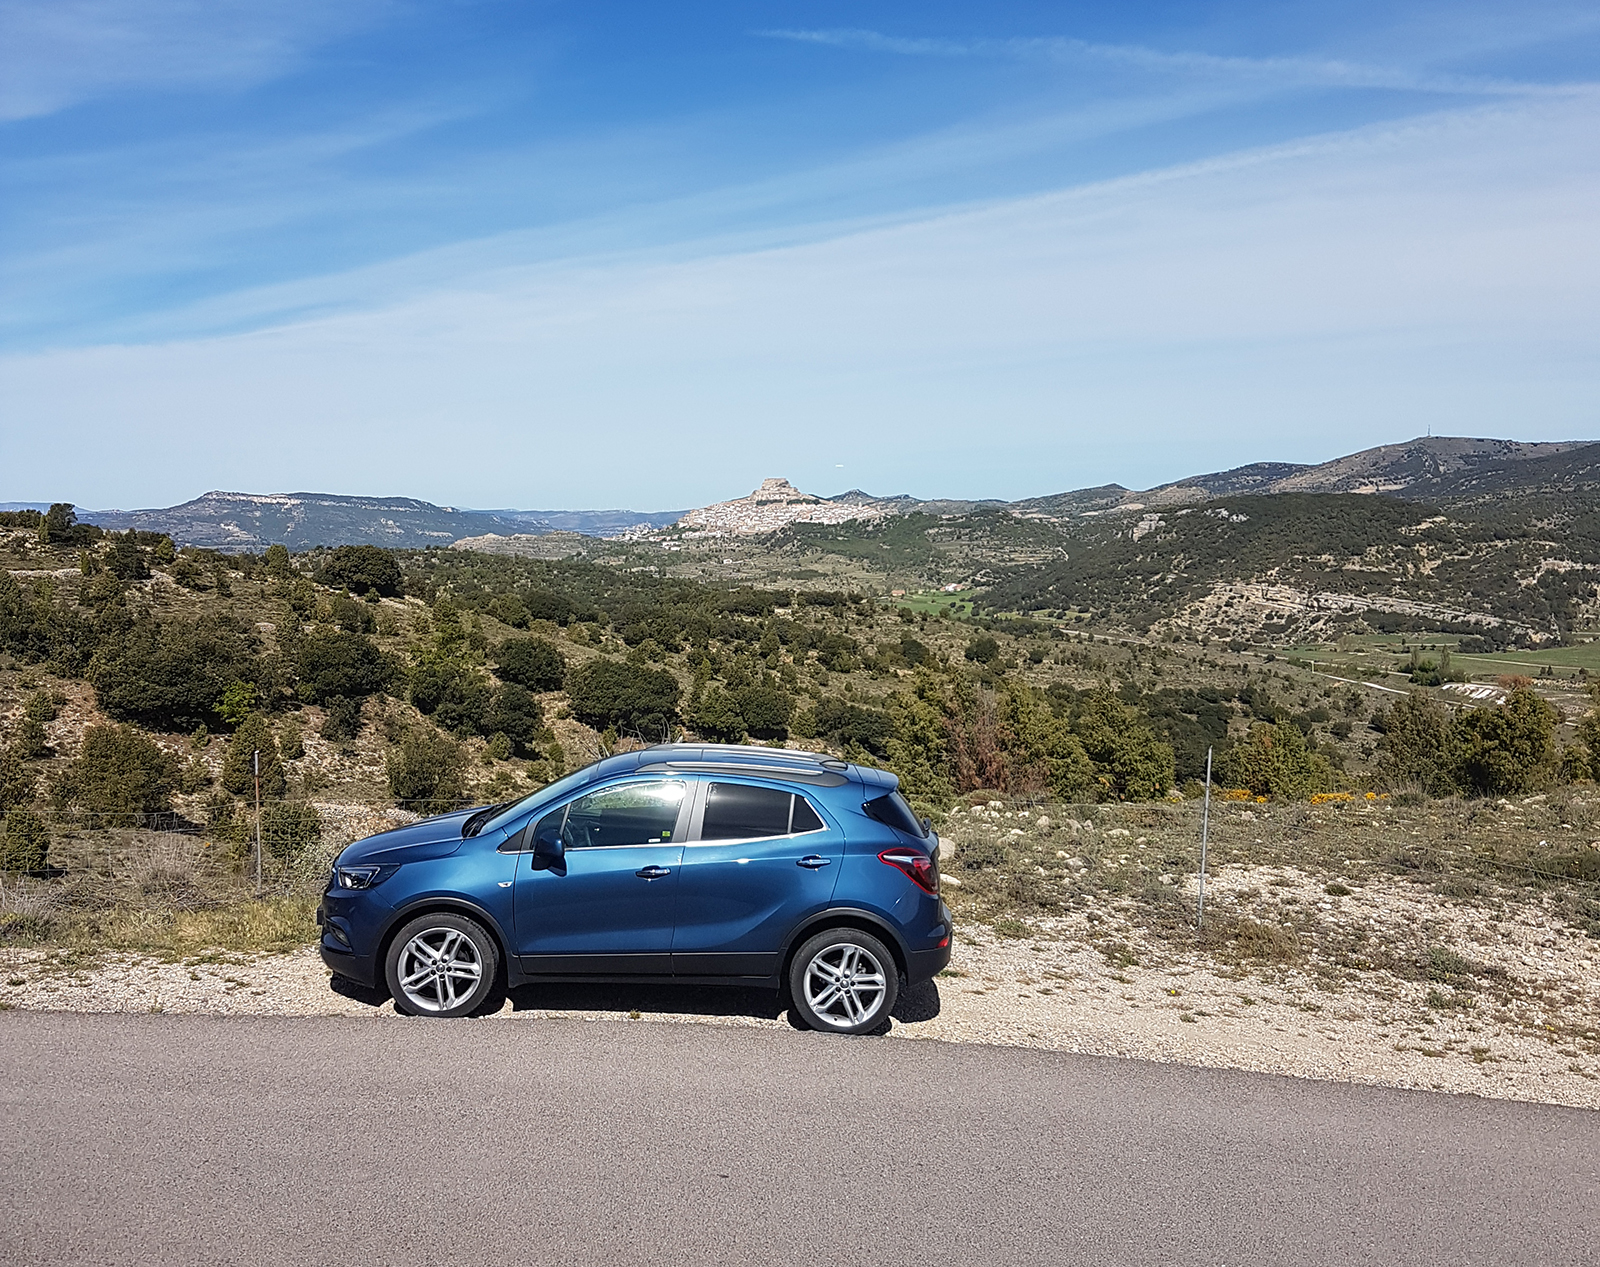 morella spain with car and view in background